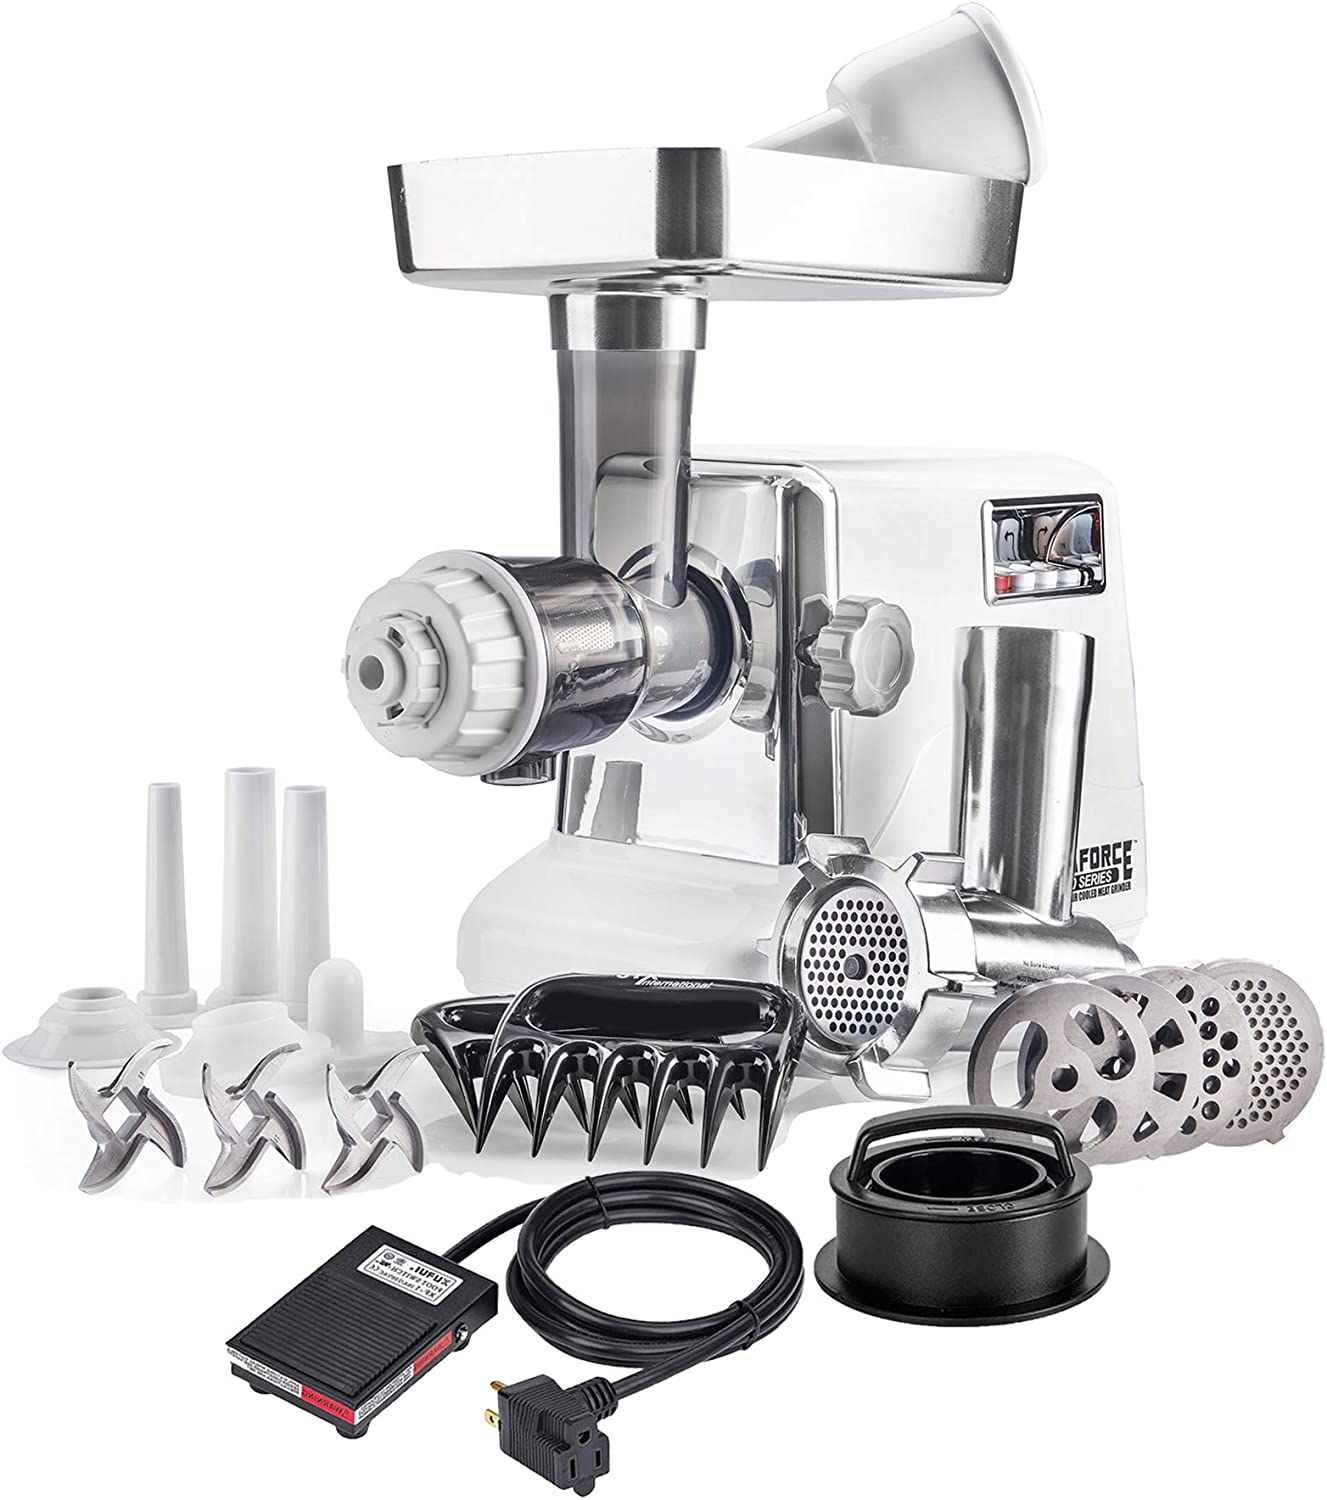 STX Turboforce 3000 Heavy Duty 7-In-1 Size #12 Electric Meat Grinder w/Foot Pedal • Cold Press Juicer • Sausage Stuffer • Kubbe Kit • Burger/Slider Maker • Meat Claws • 3 Blades • 4 Grinding Plates